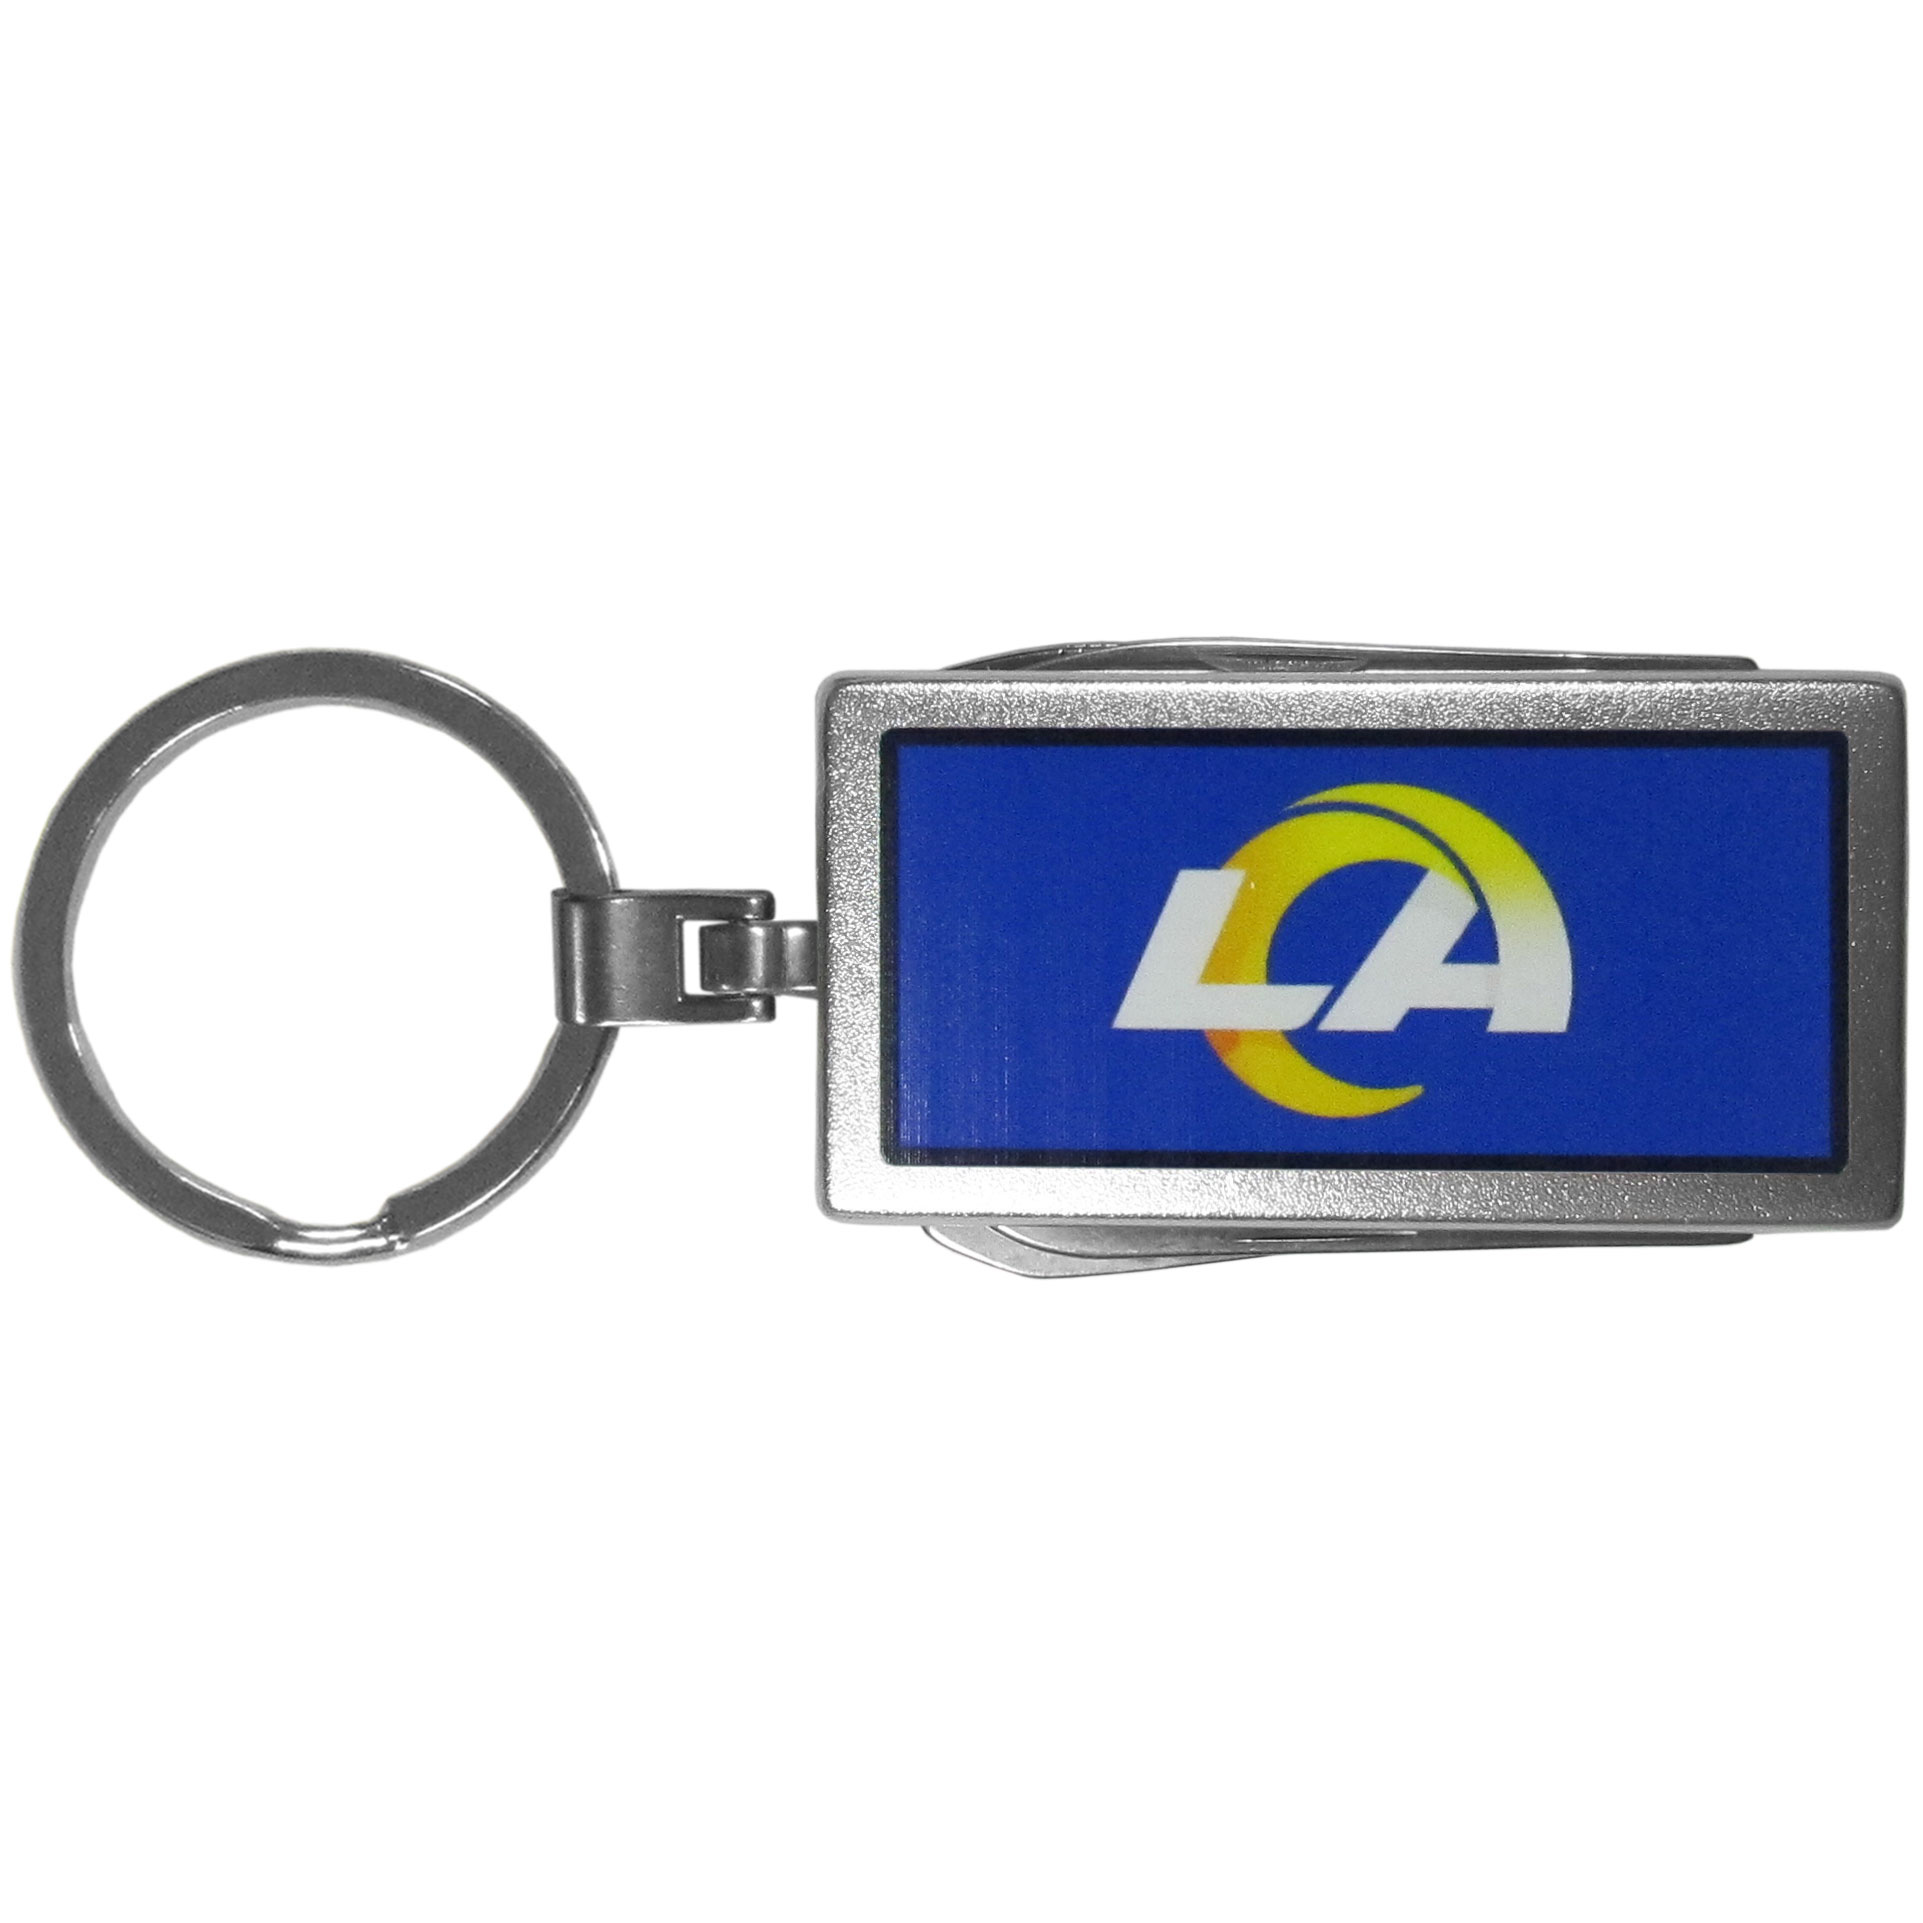 Los Angeles Rams Multi-tool Key Chain, Logo - Be the hero at the tailgate, camping, or on a Friday night with your Los Angeles Rams Multi-Tool Keychain which comes complete with bottle opener, scissors, knife, nail file and screw driver. Be it opening a package or a beverage Siskiyou's Multi-Tool Keychain goes wherever your keys do. The keychain hangs at 4 inches long when closed.